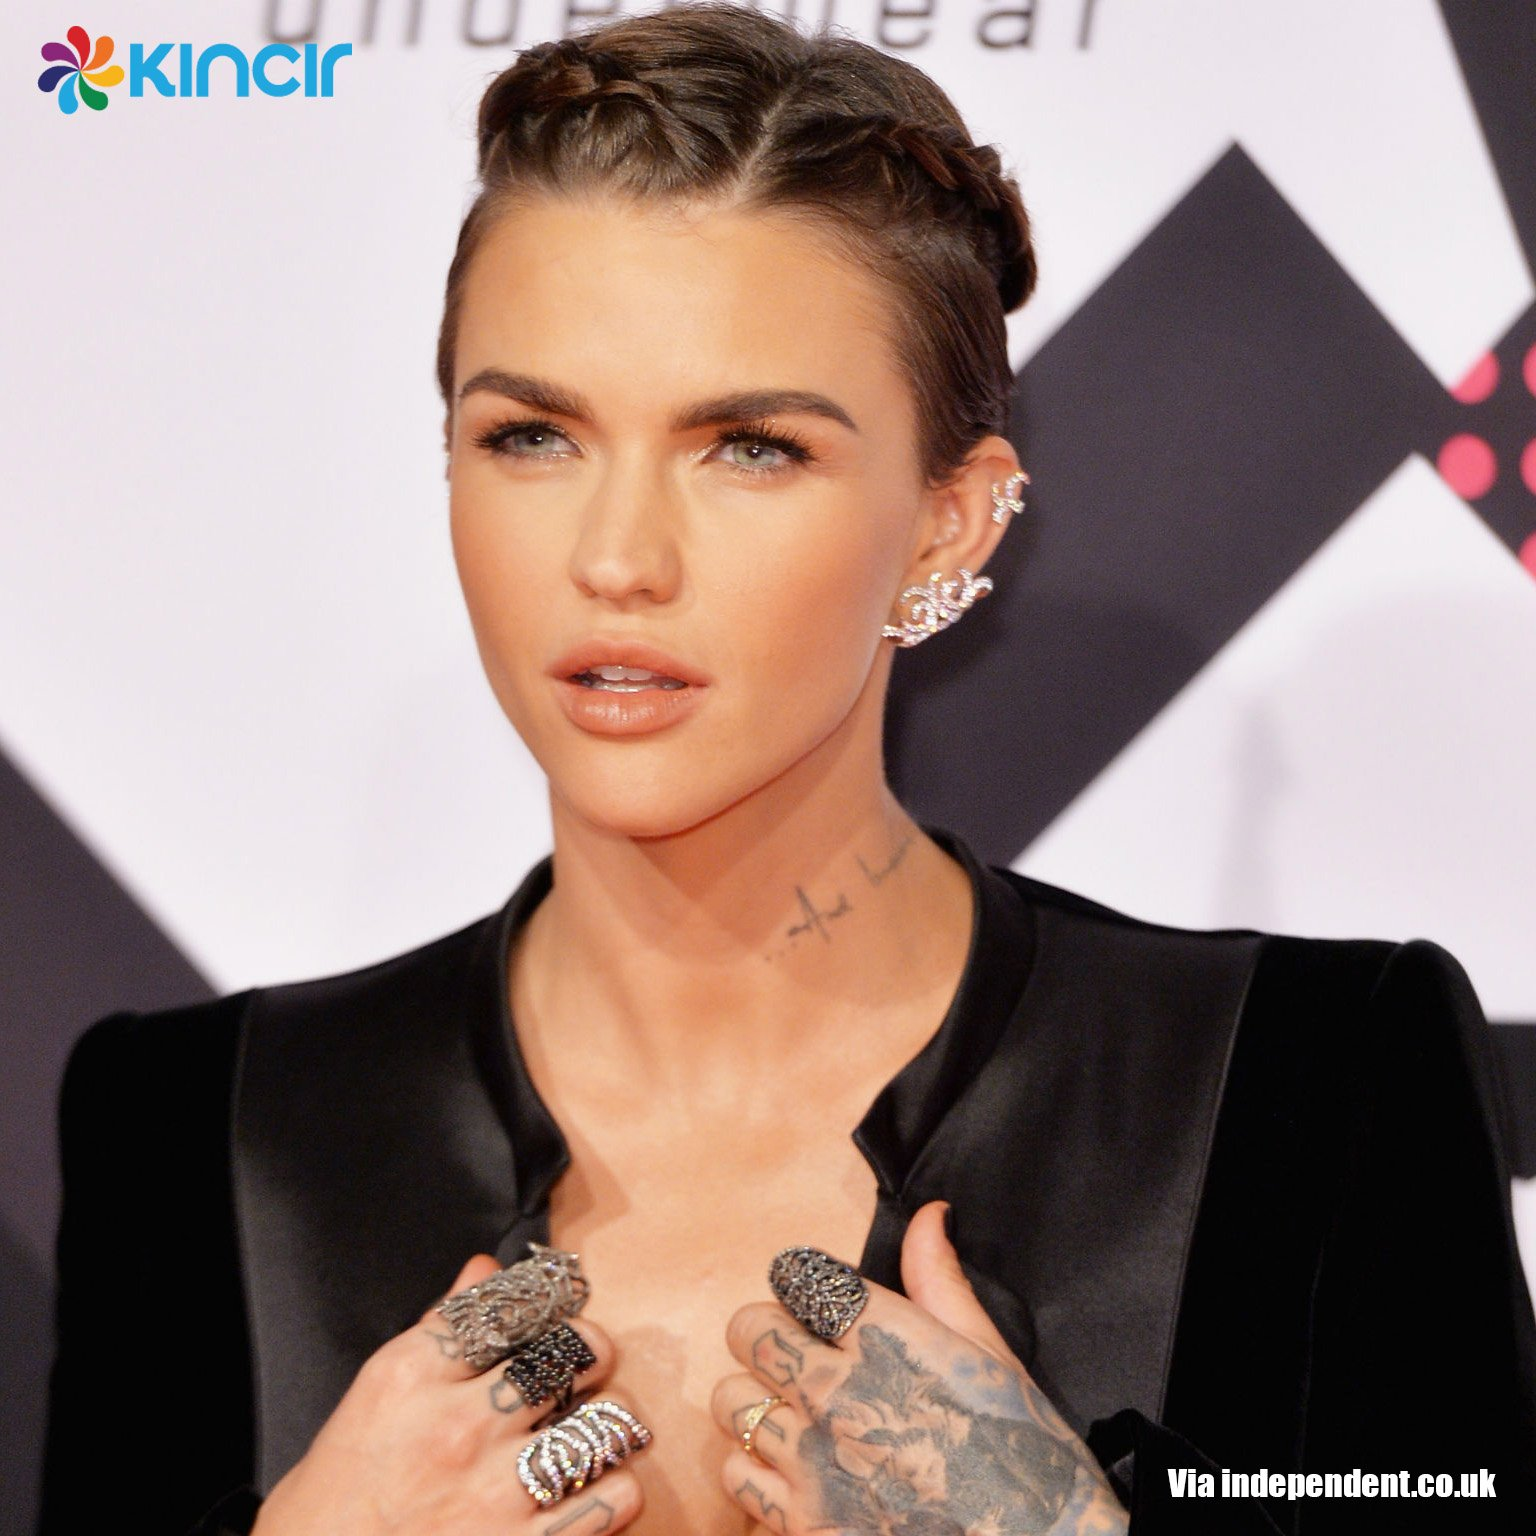 Happy birthday, Ruby Rose!